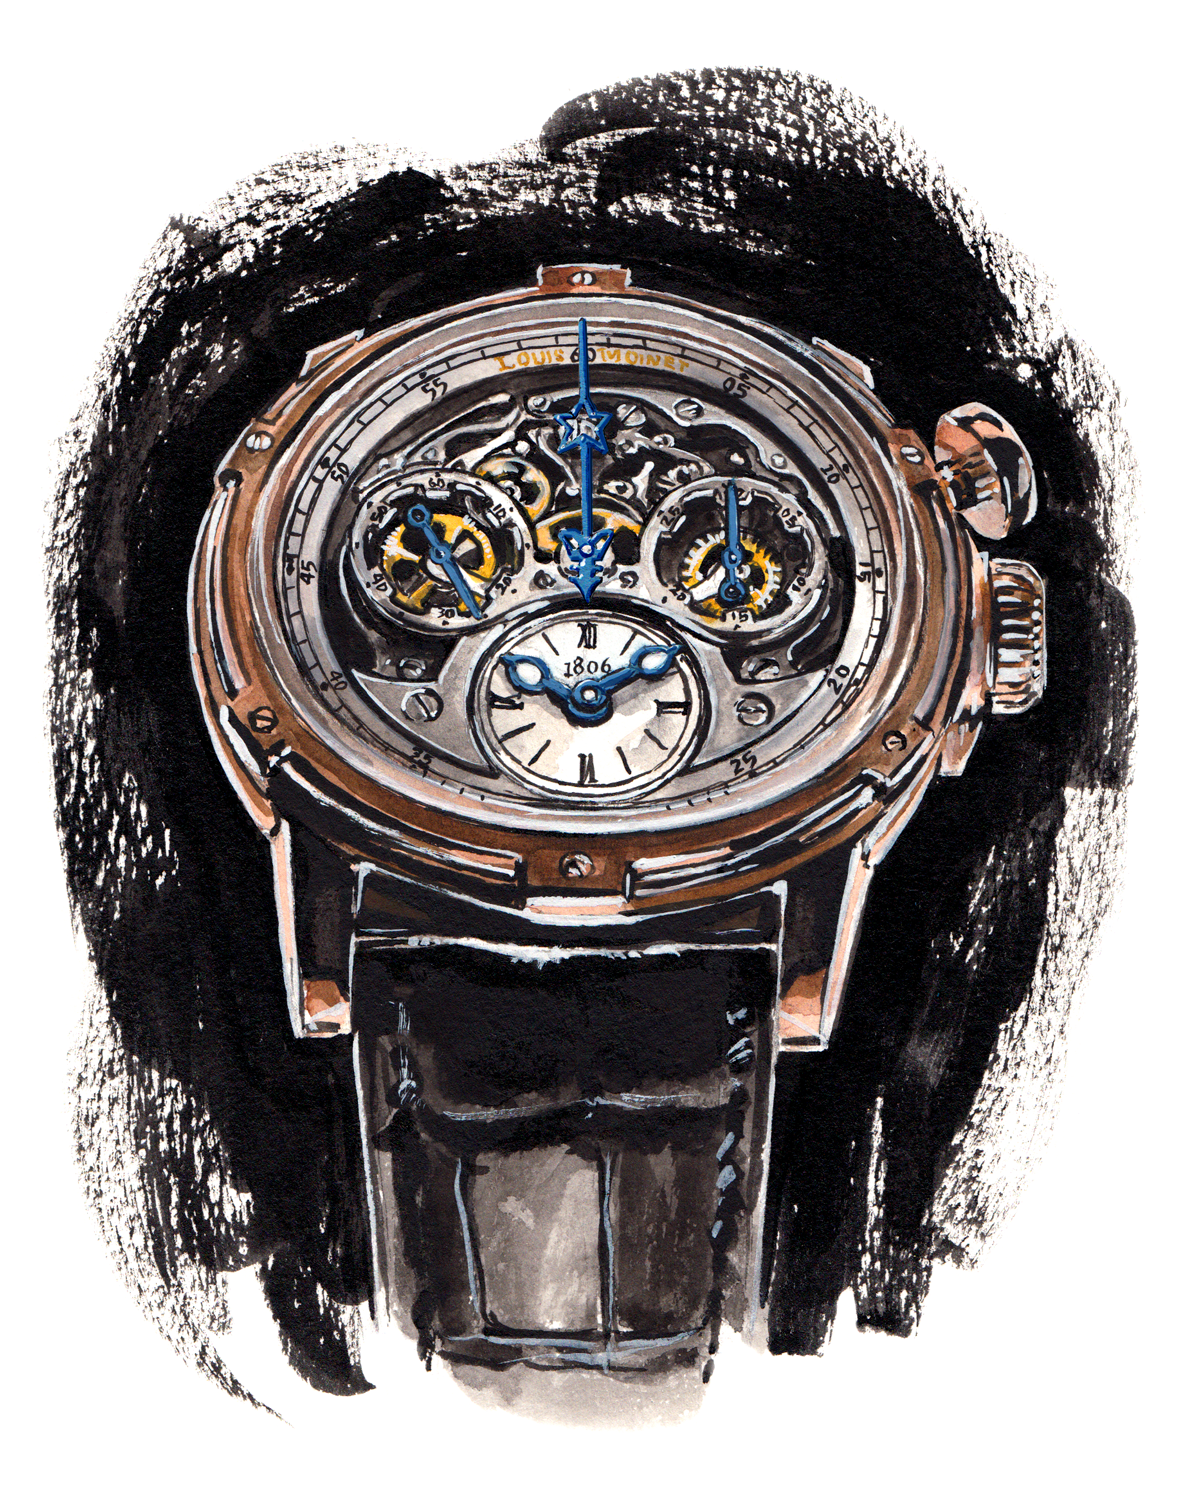 Louis Moinet Memoris chronograph illustration